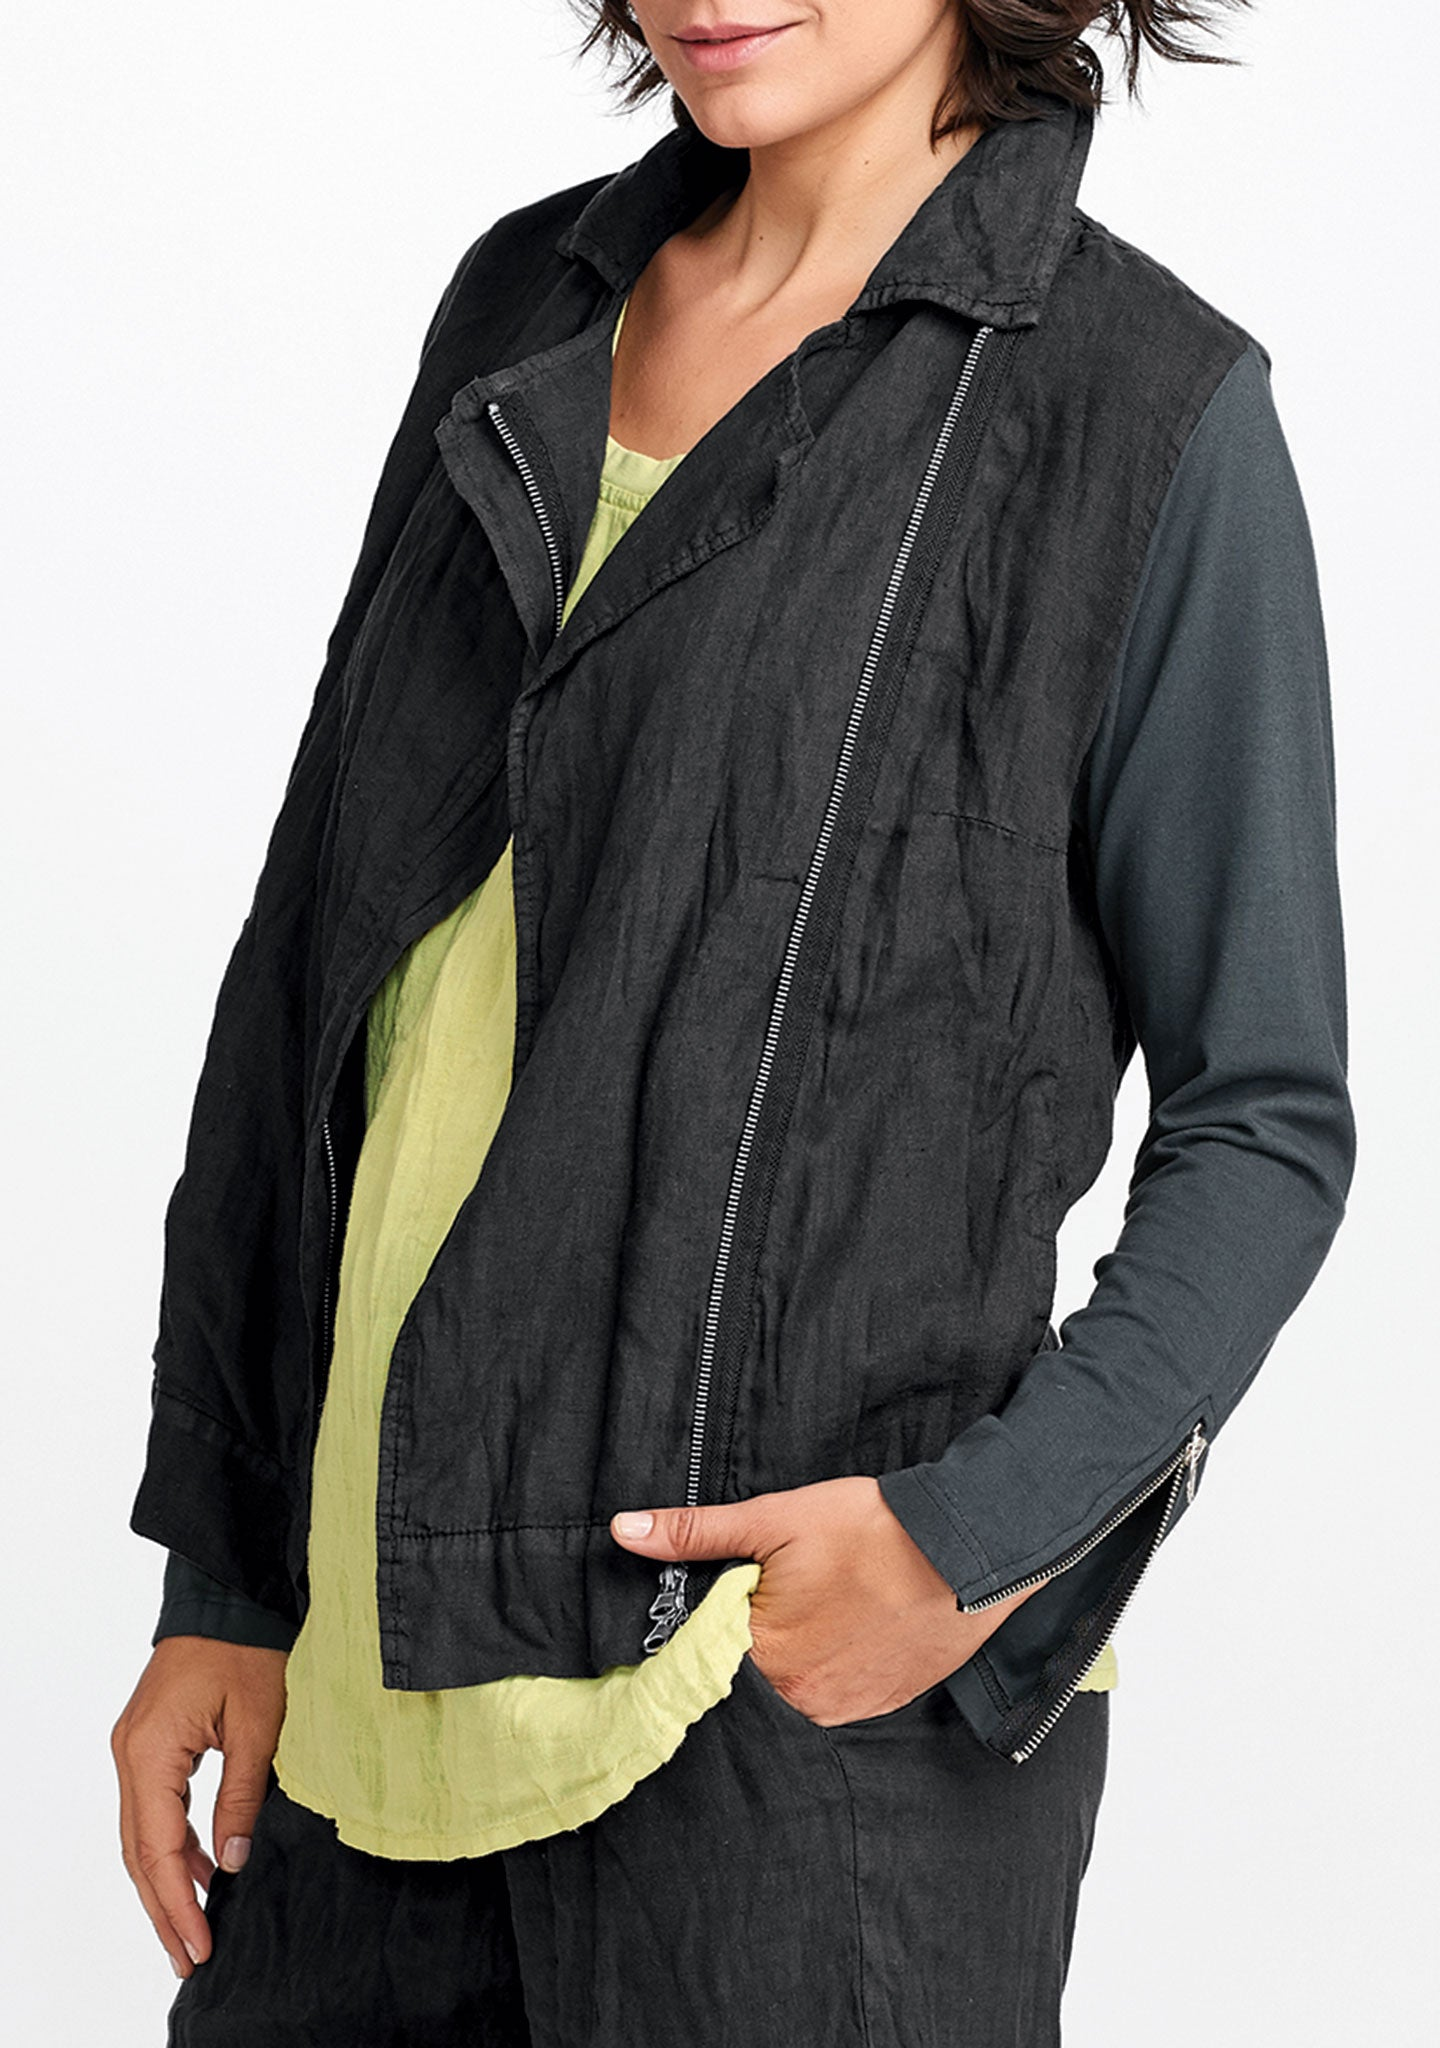 wanderlust jacket black